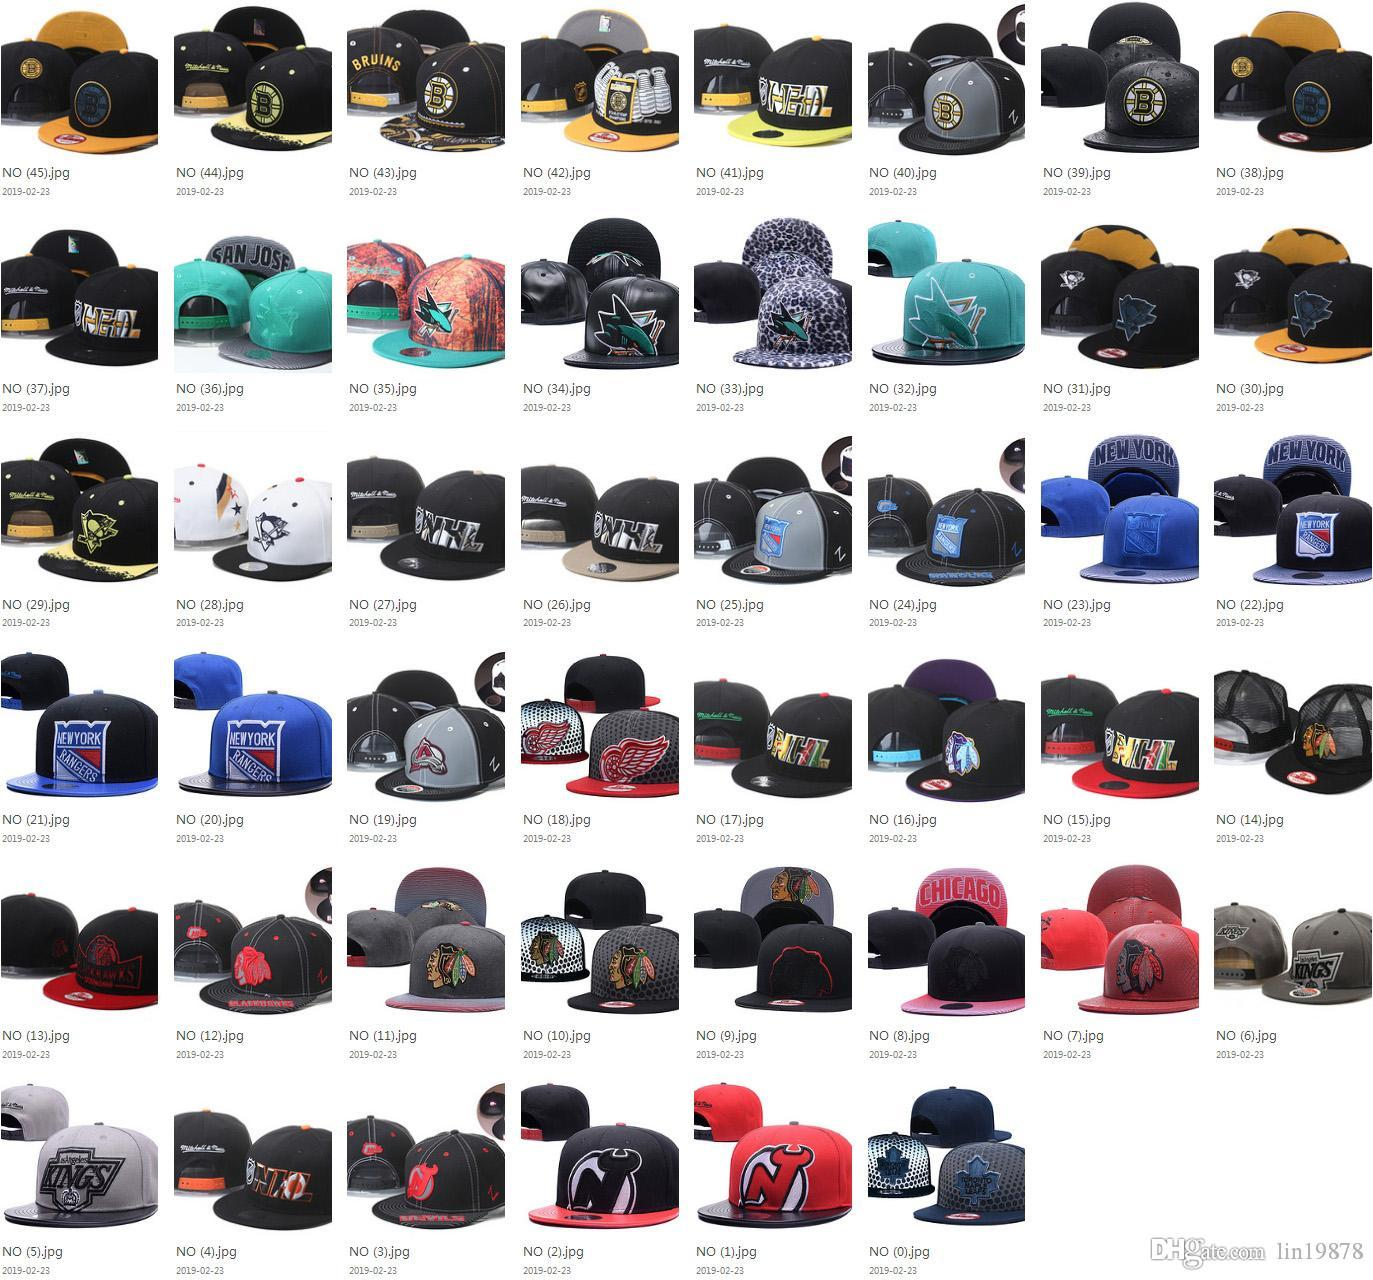 46 Arten NHL Baseball Caps Blackhawks Penguins Flyer Sharks Bruins Maple Leafs Männer Frauen Sport gorras Knochen-Hüte